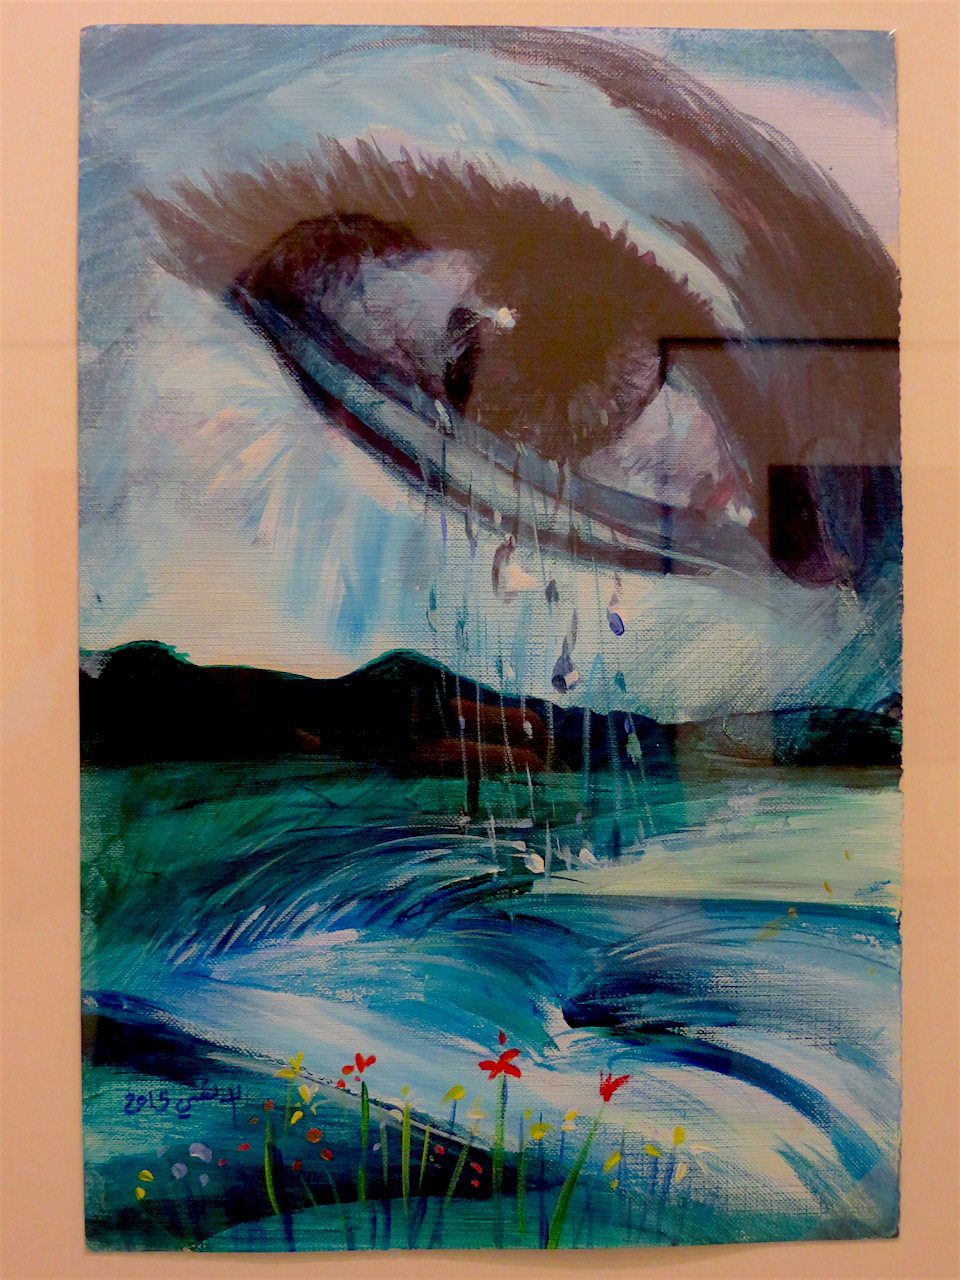 Untitled (aka Crying eye) by Mohammed al-Ansi, who was released from Guantanamo to Oman in January 2017, just before President Obama left office (Photo: Andy Worthington).